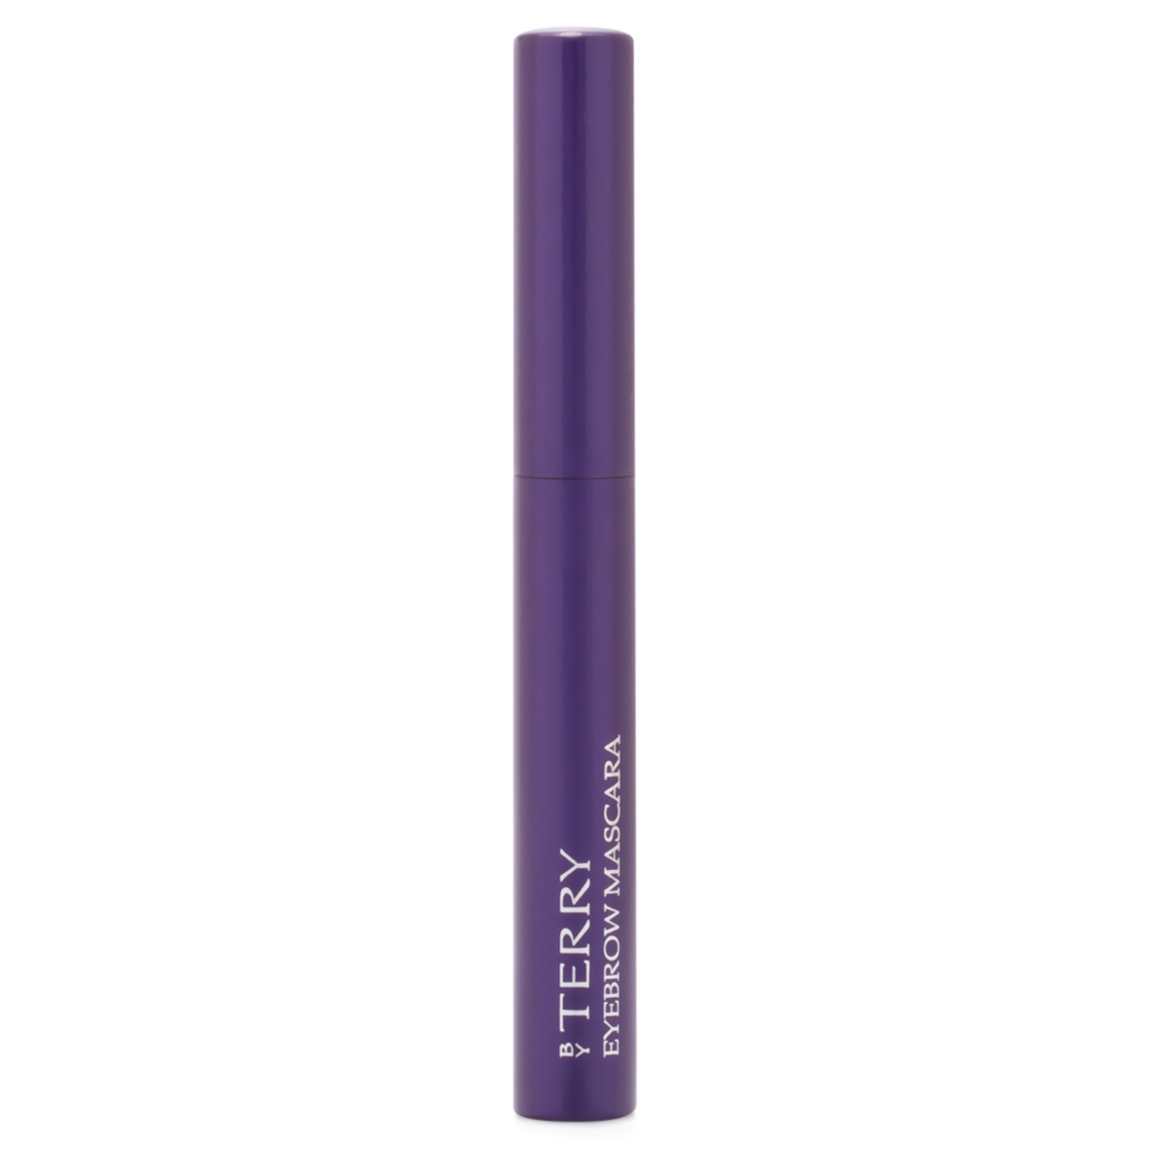 BY TERRY Eyebrow Mascara 1 Highlight Blonde